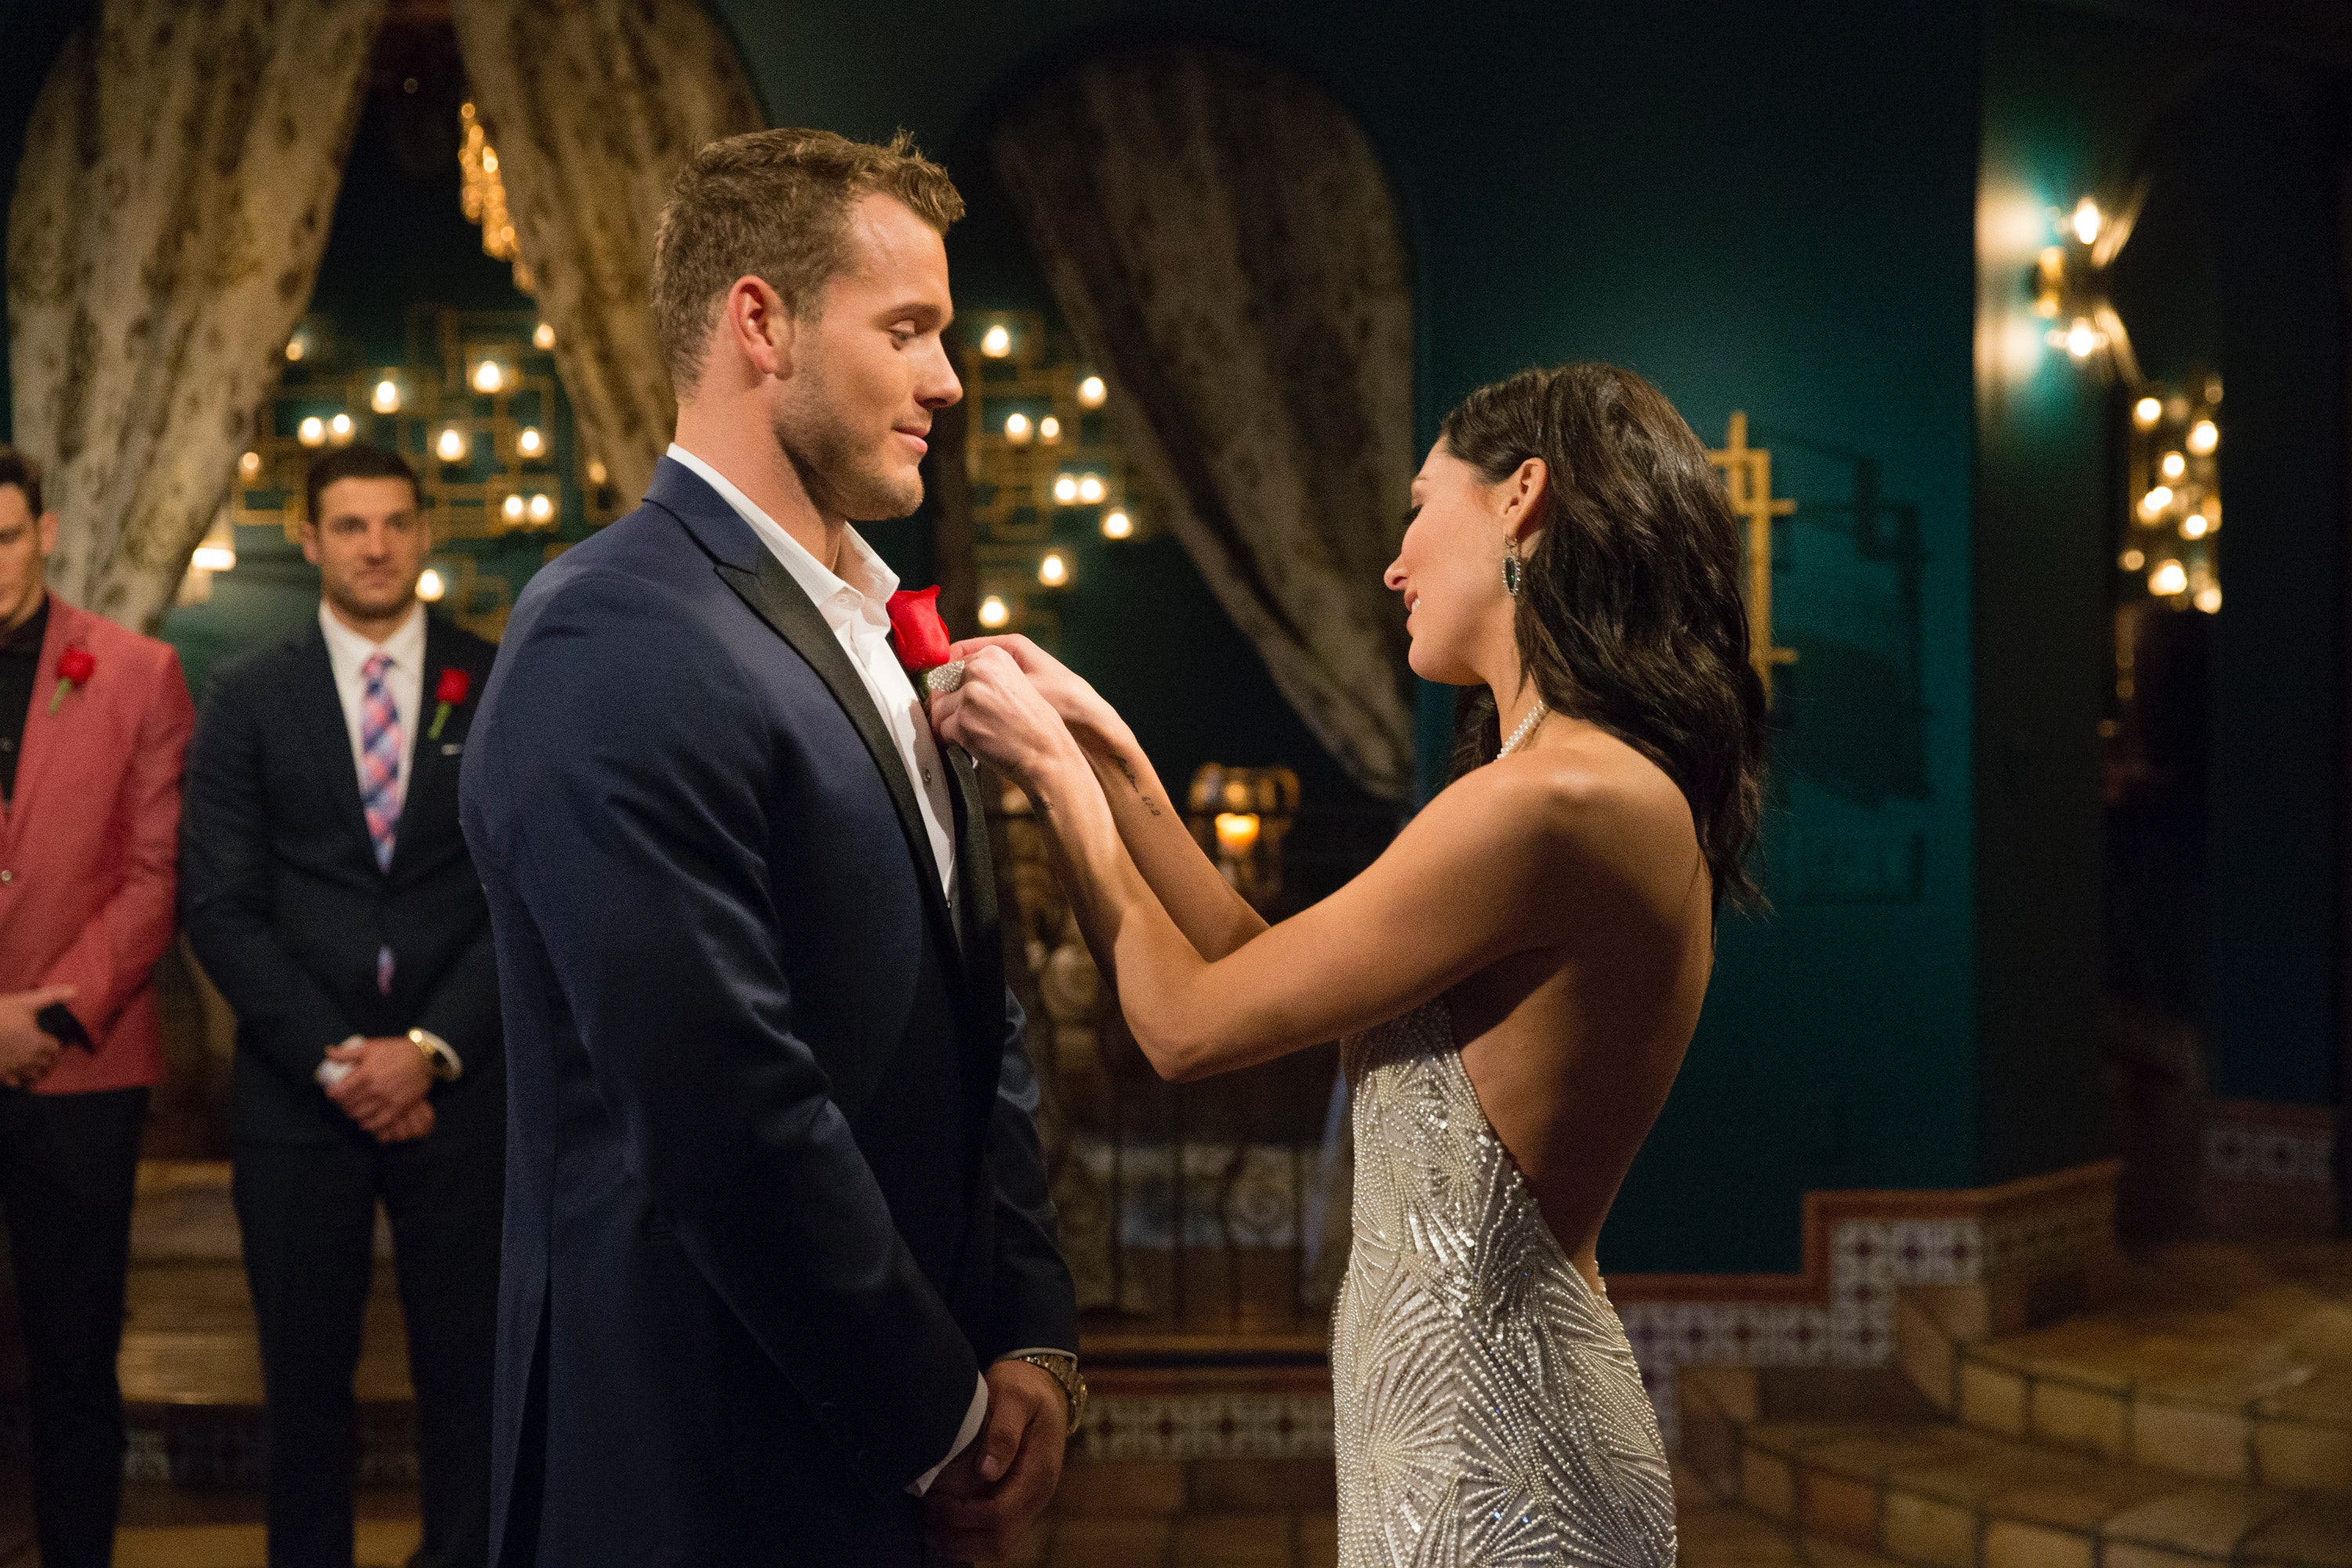 Who is the bachelorette hookup now